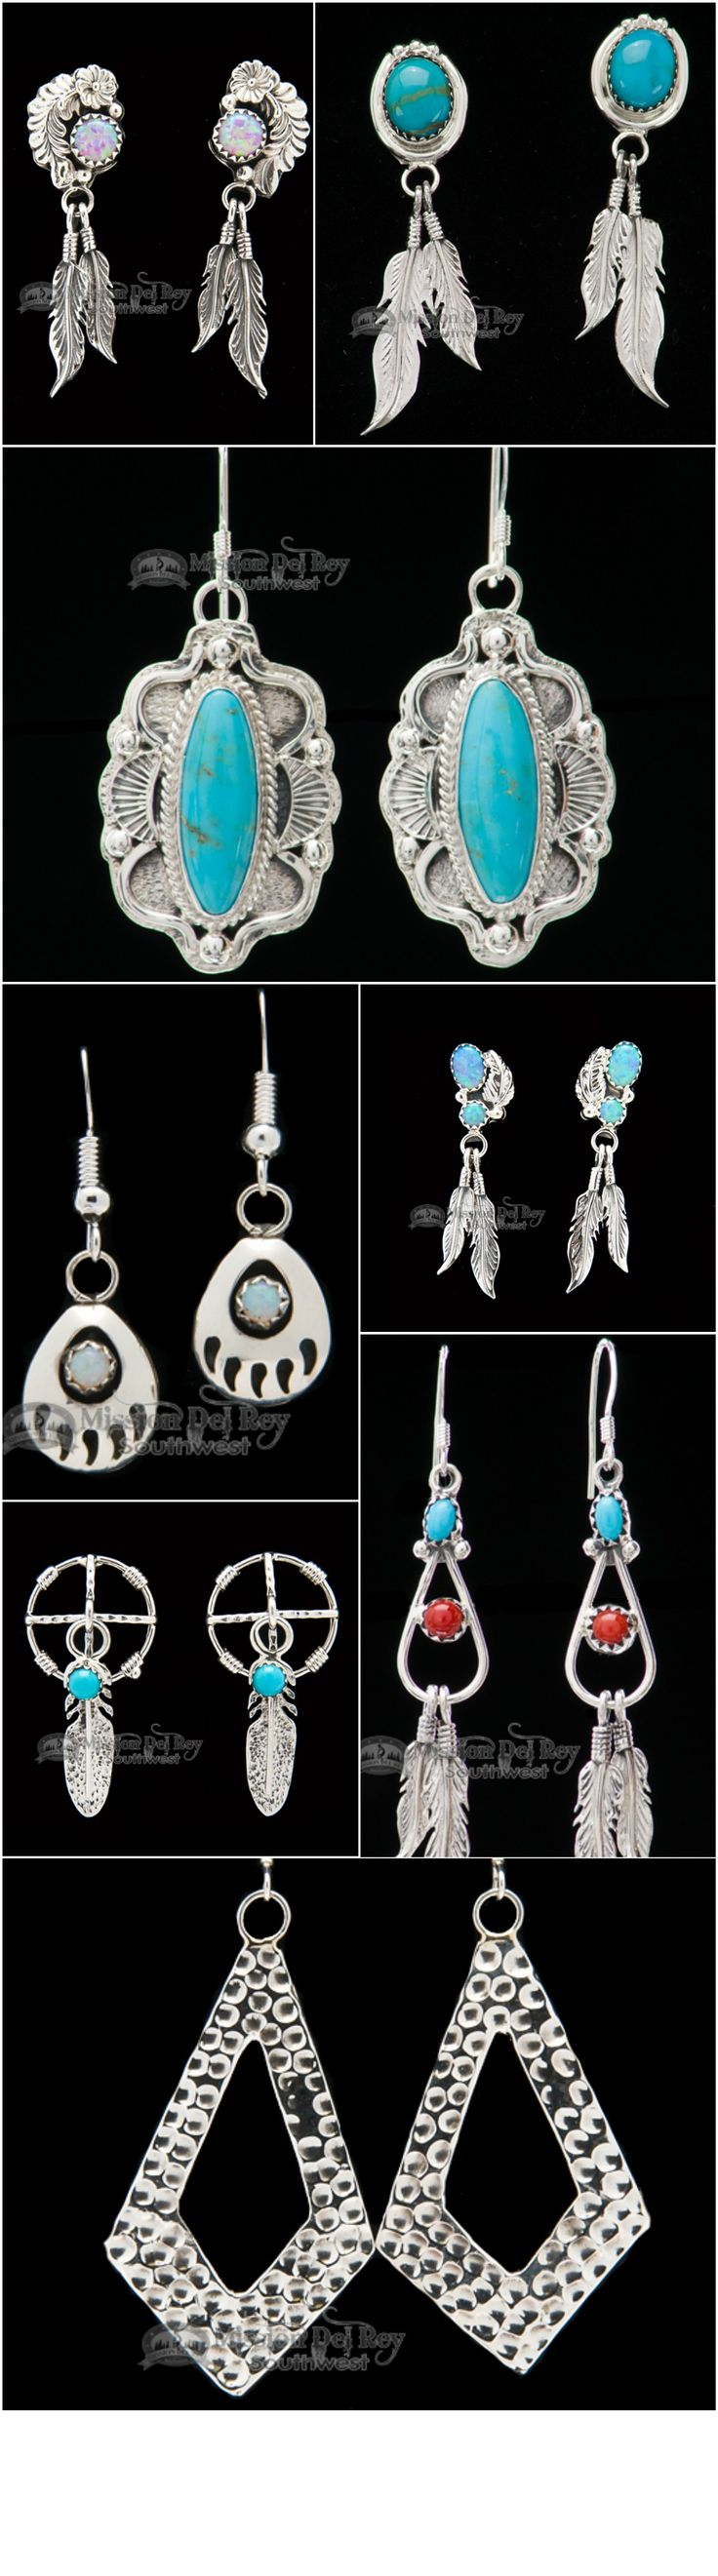 Silver Indian jewelry is very popular for those that love Native apparel and accessories.  Silver earrings are among the most popular pieces of Native silver jewelry, and can often be found with etchings, beads or precious stones. Native American beaded earrings come in a wide variety of colors and styles, and each piece of Indian jewelry is intricately handcrafted. If you like Native American style jewelry, you will love the great selection you find at Mission Del Rey.